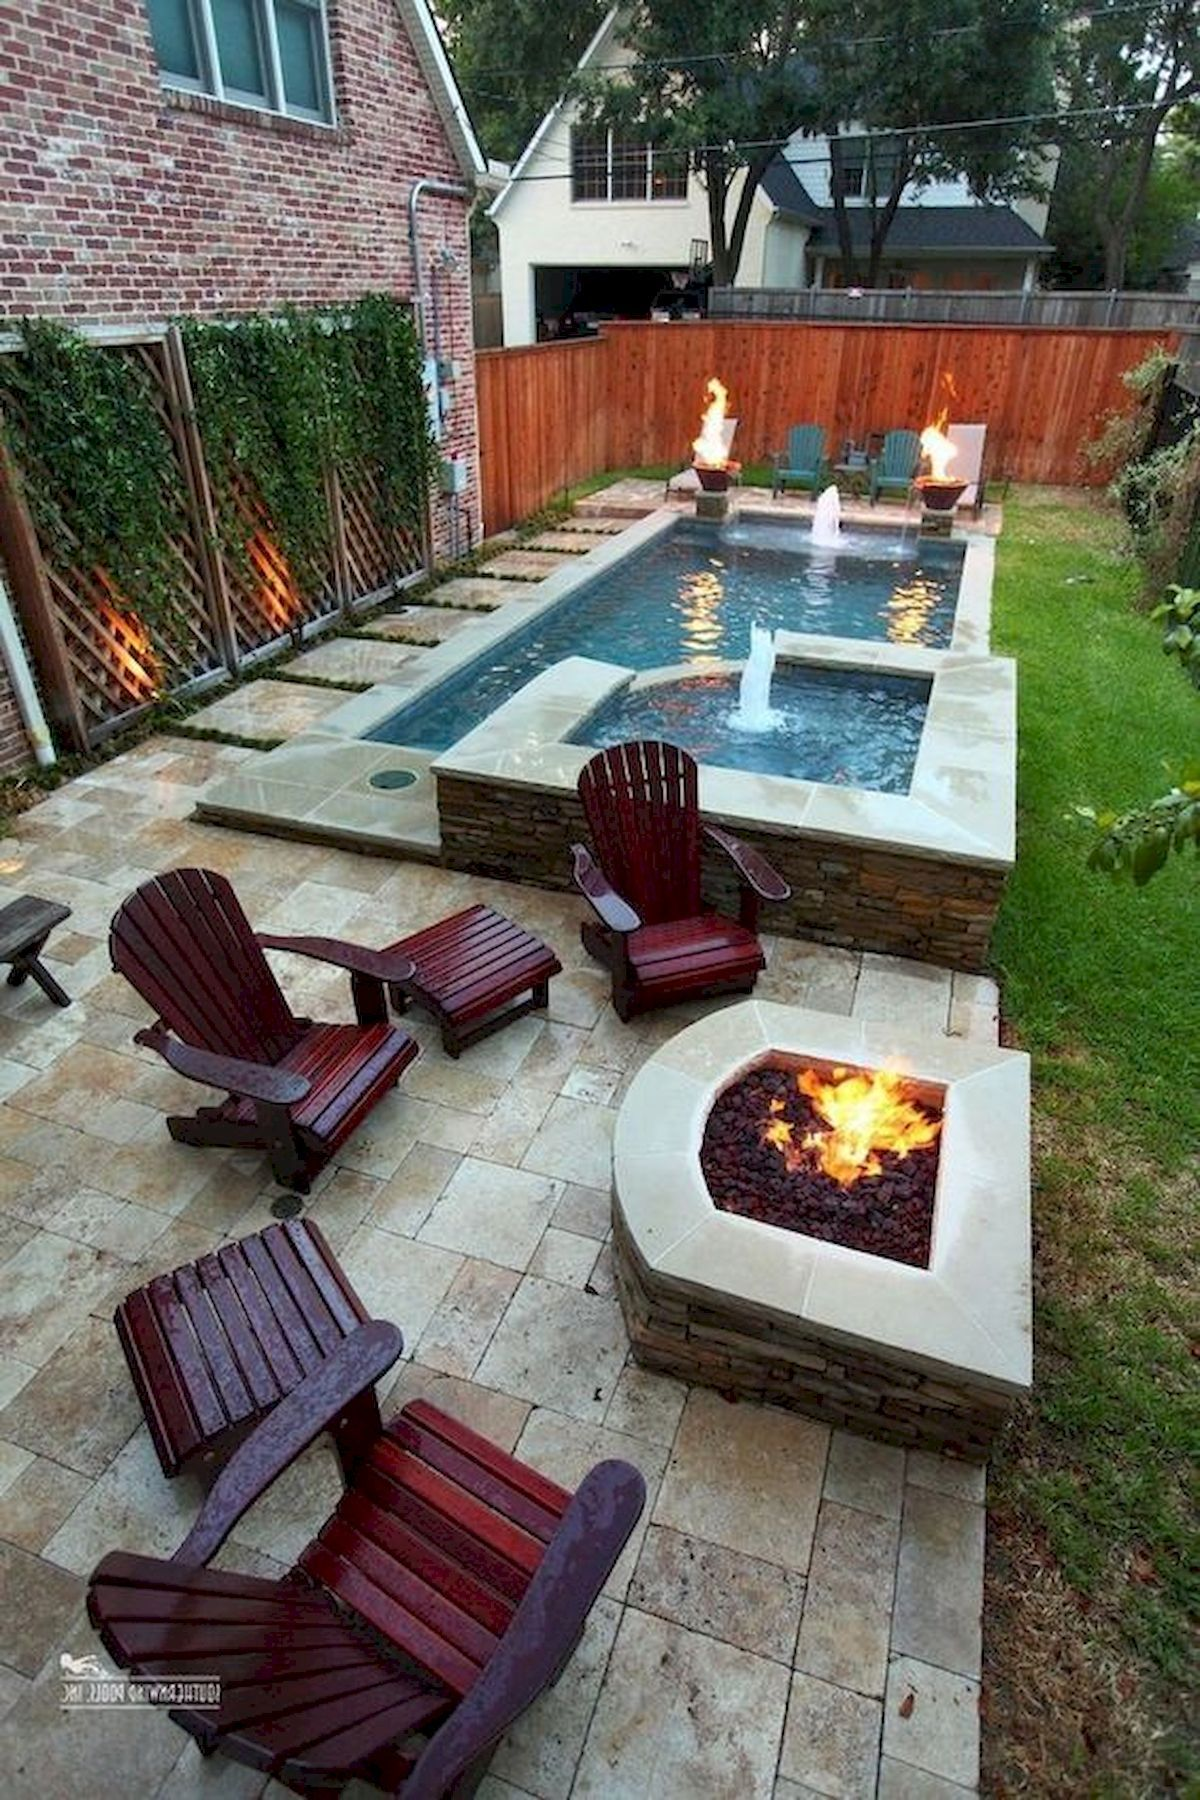 50 gorgeous small swimming pool ideas for small backyard on gorgeous small backyard landscaping ideas id=11456